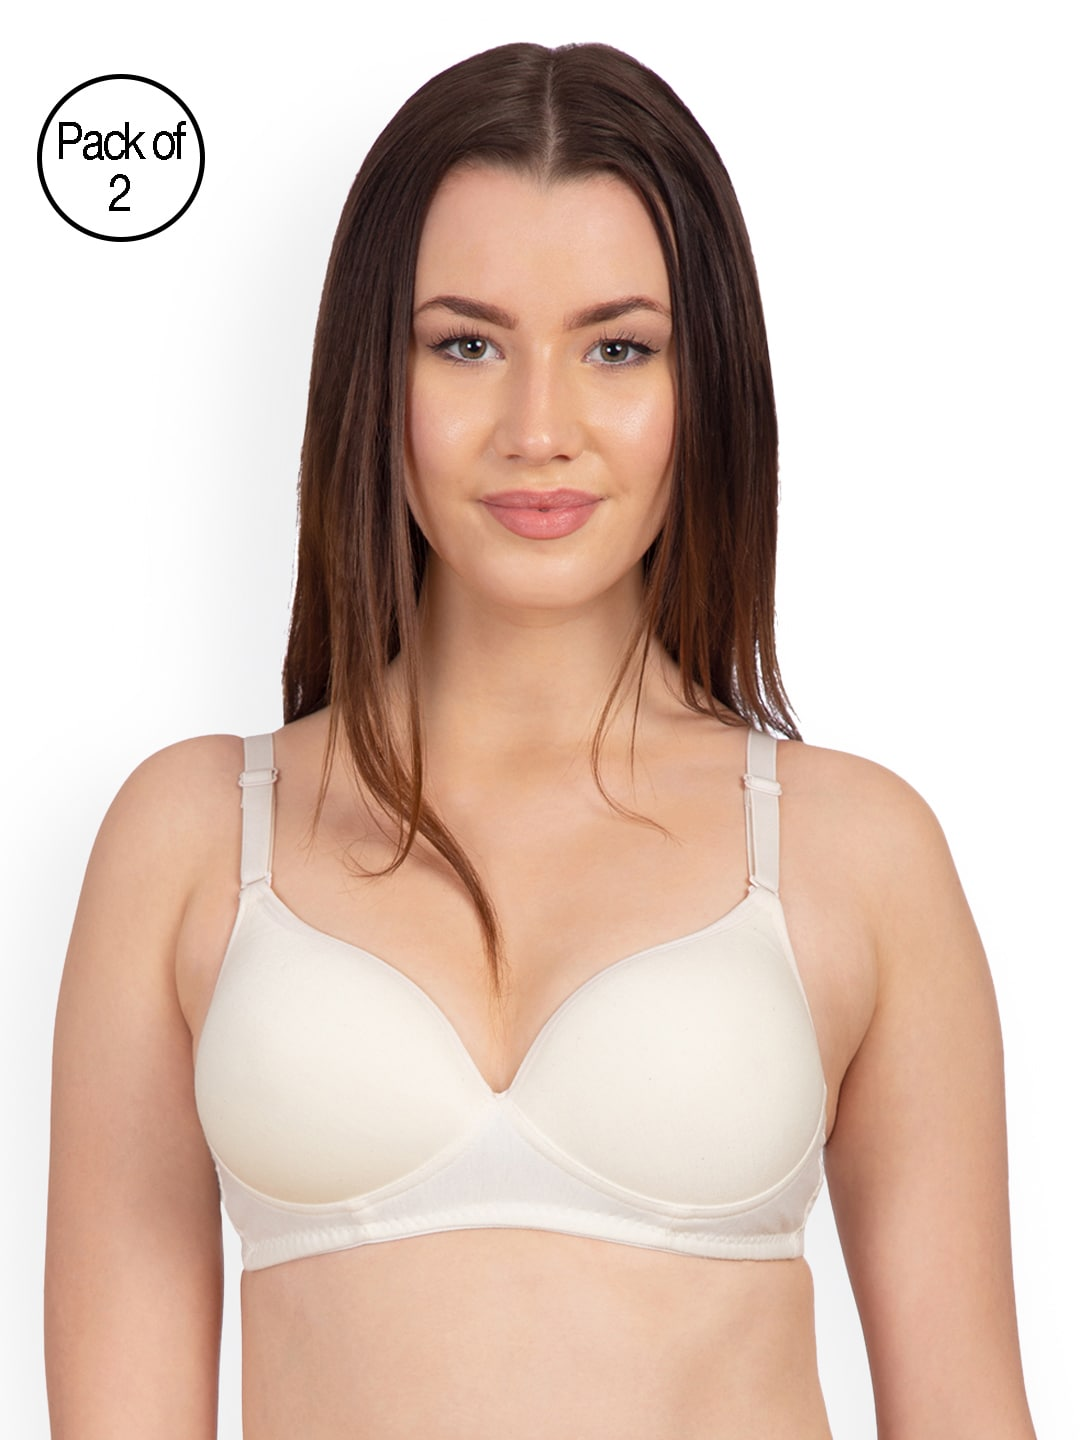 c9a1d27c8ad5f Lingerie - Buy Lingerie for Women Online at Best Price